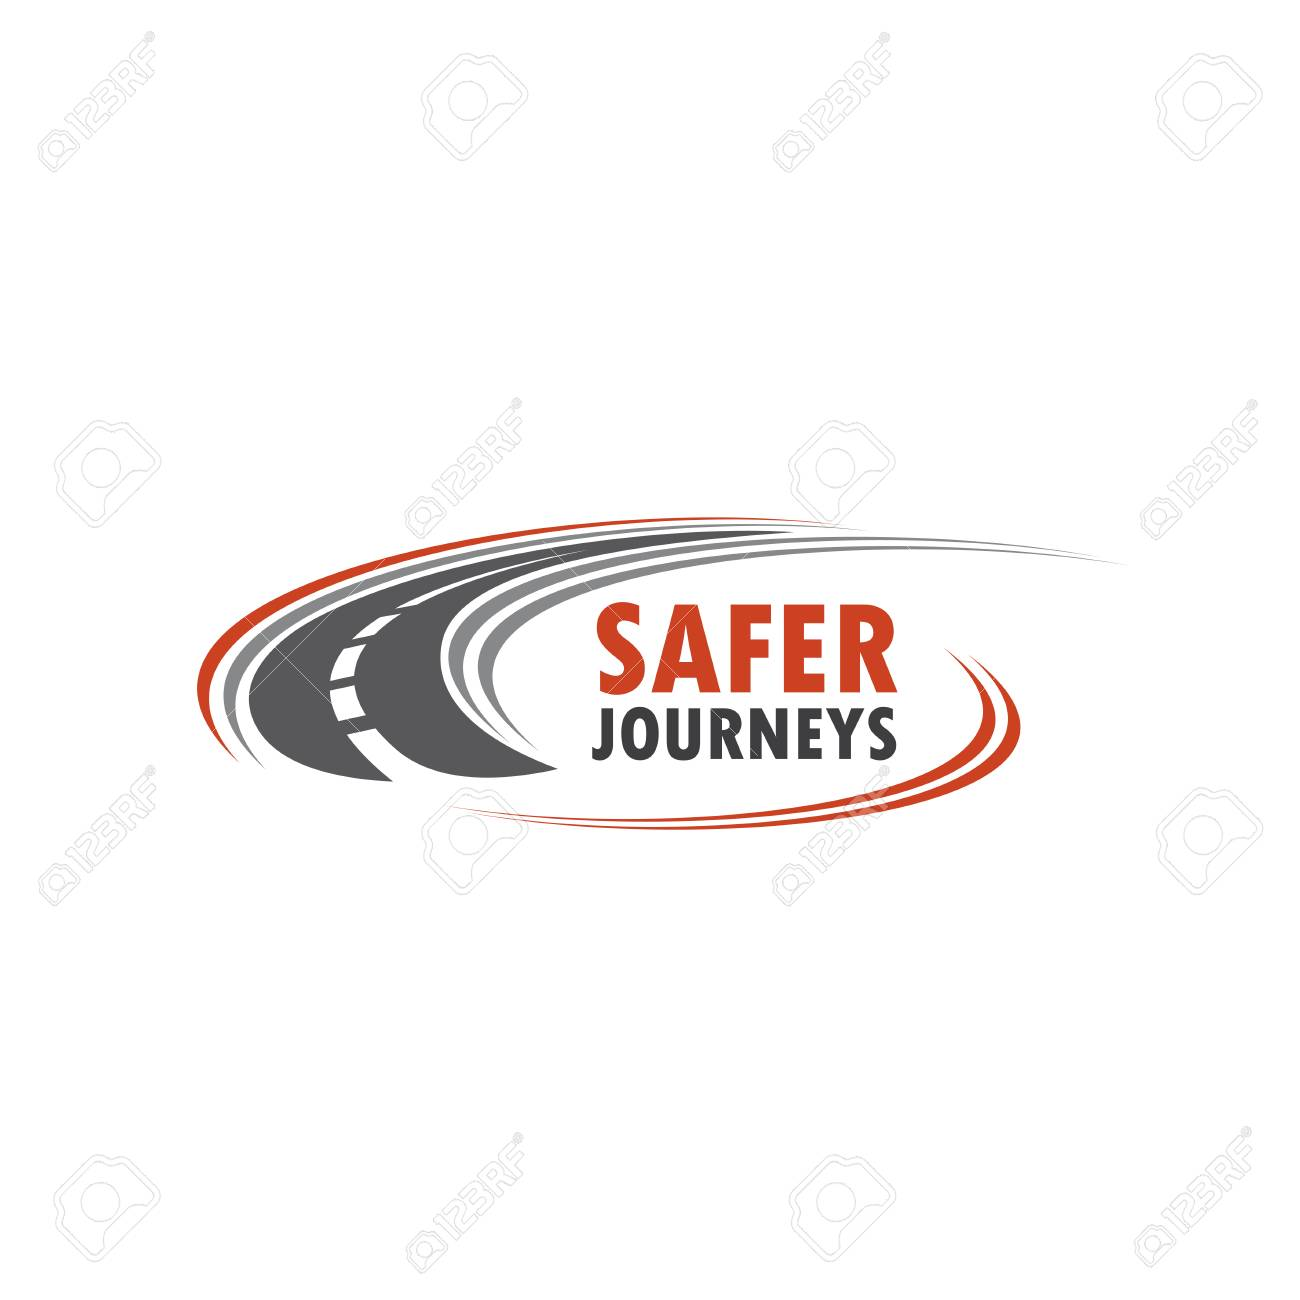 Road vector icon for safety journey - 82150173